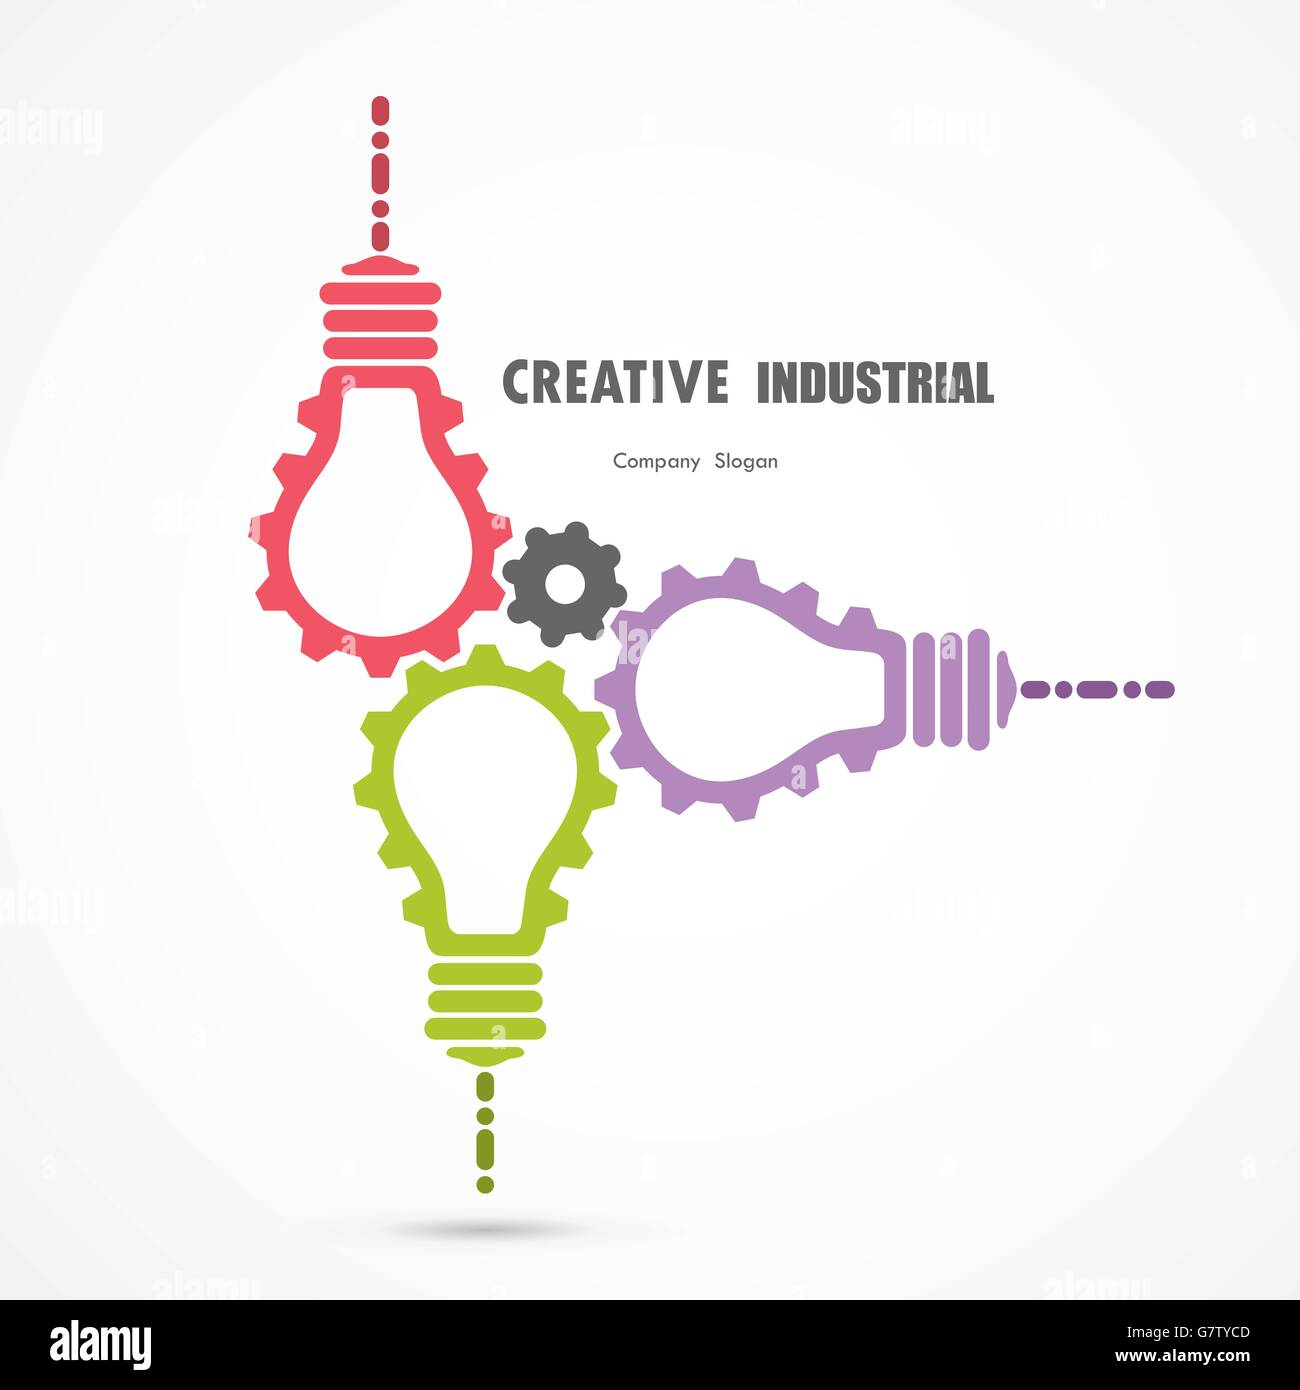 Design banner template - Creative Light Bulb And Gear Abstract Vector Design Banner Template Corporate Business Industrial Creative Logotype